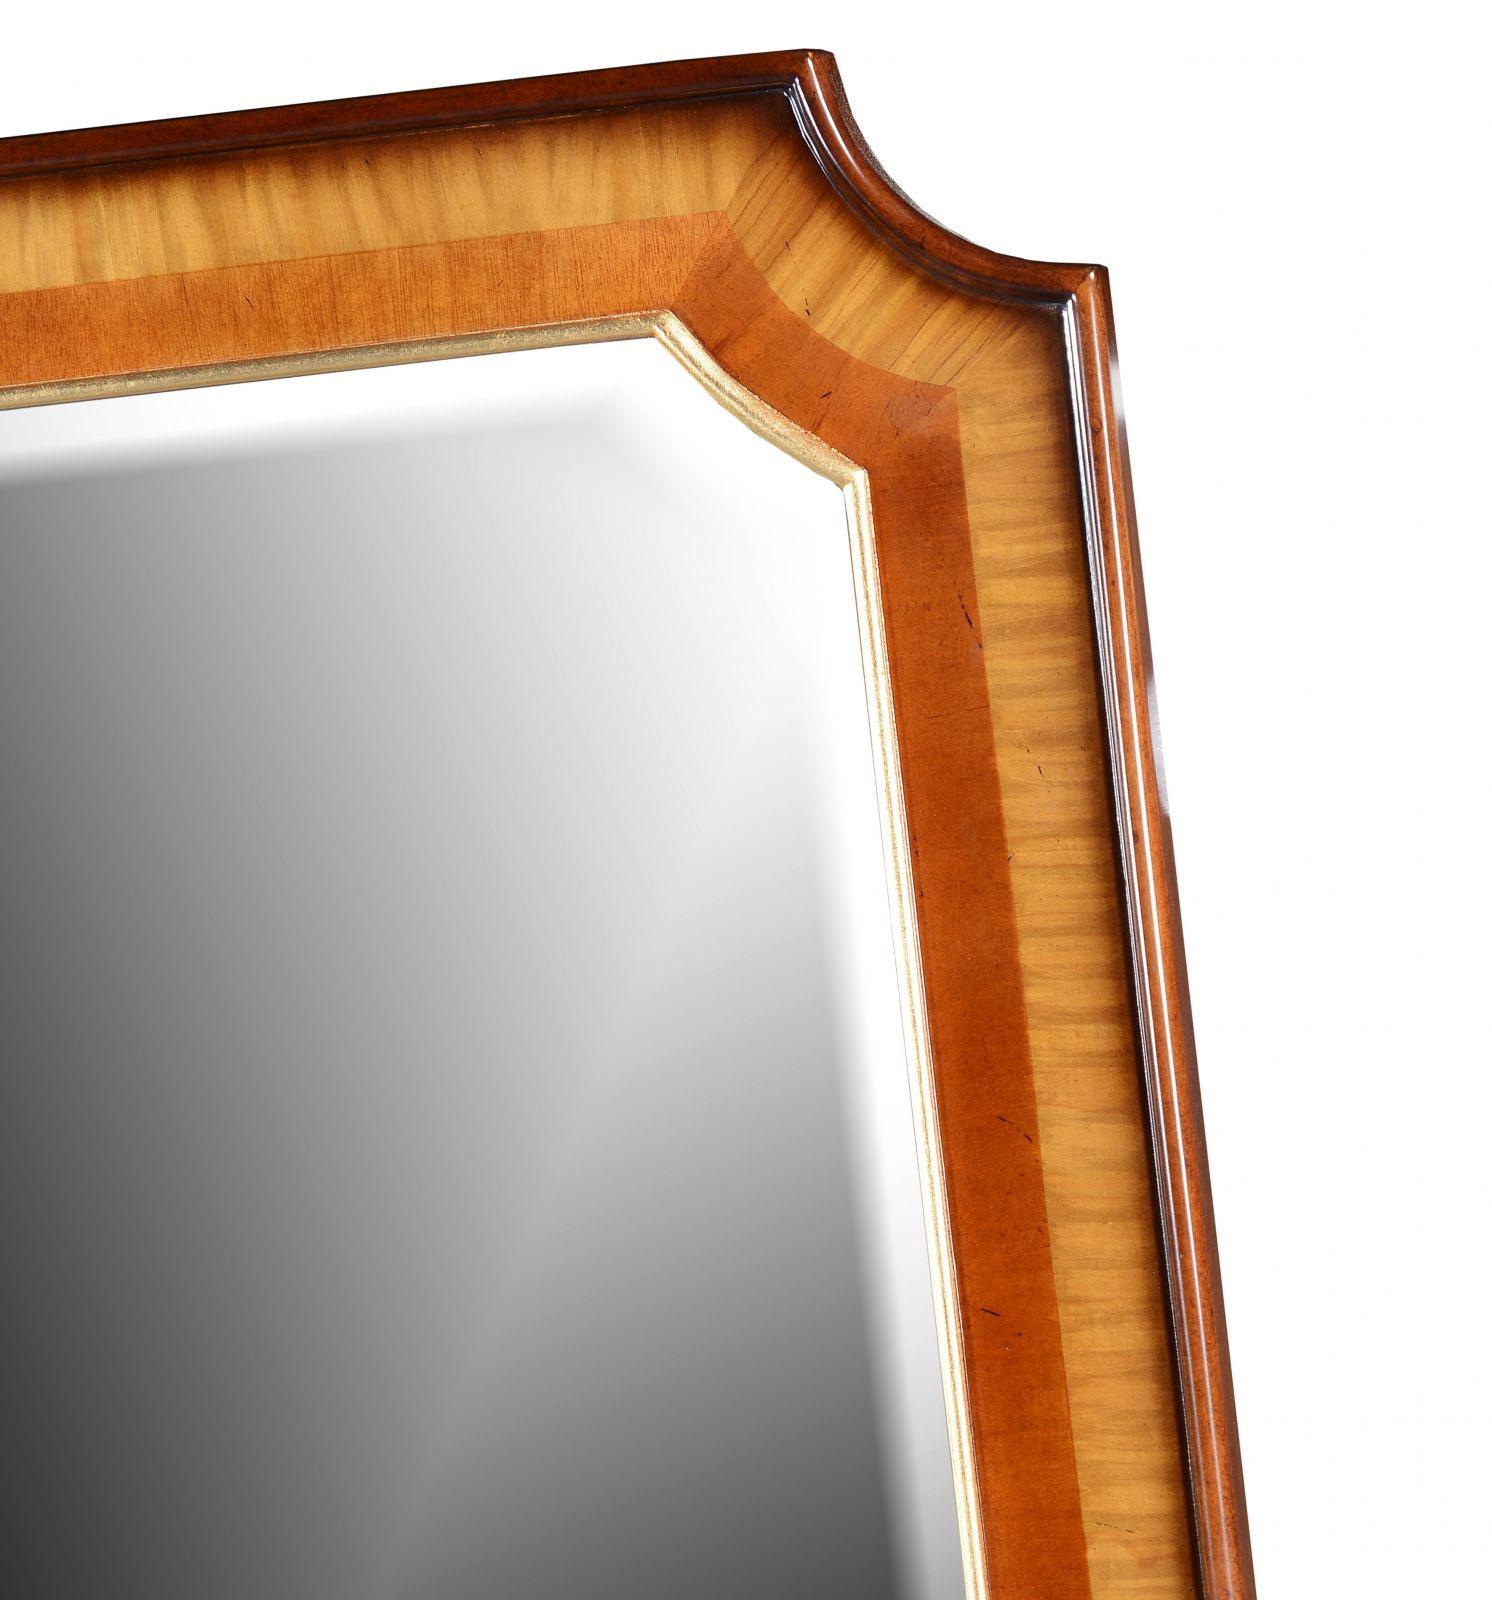 Mahogany and satinwood wooden overmantel mirror